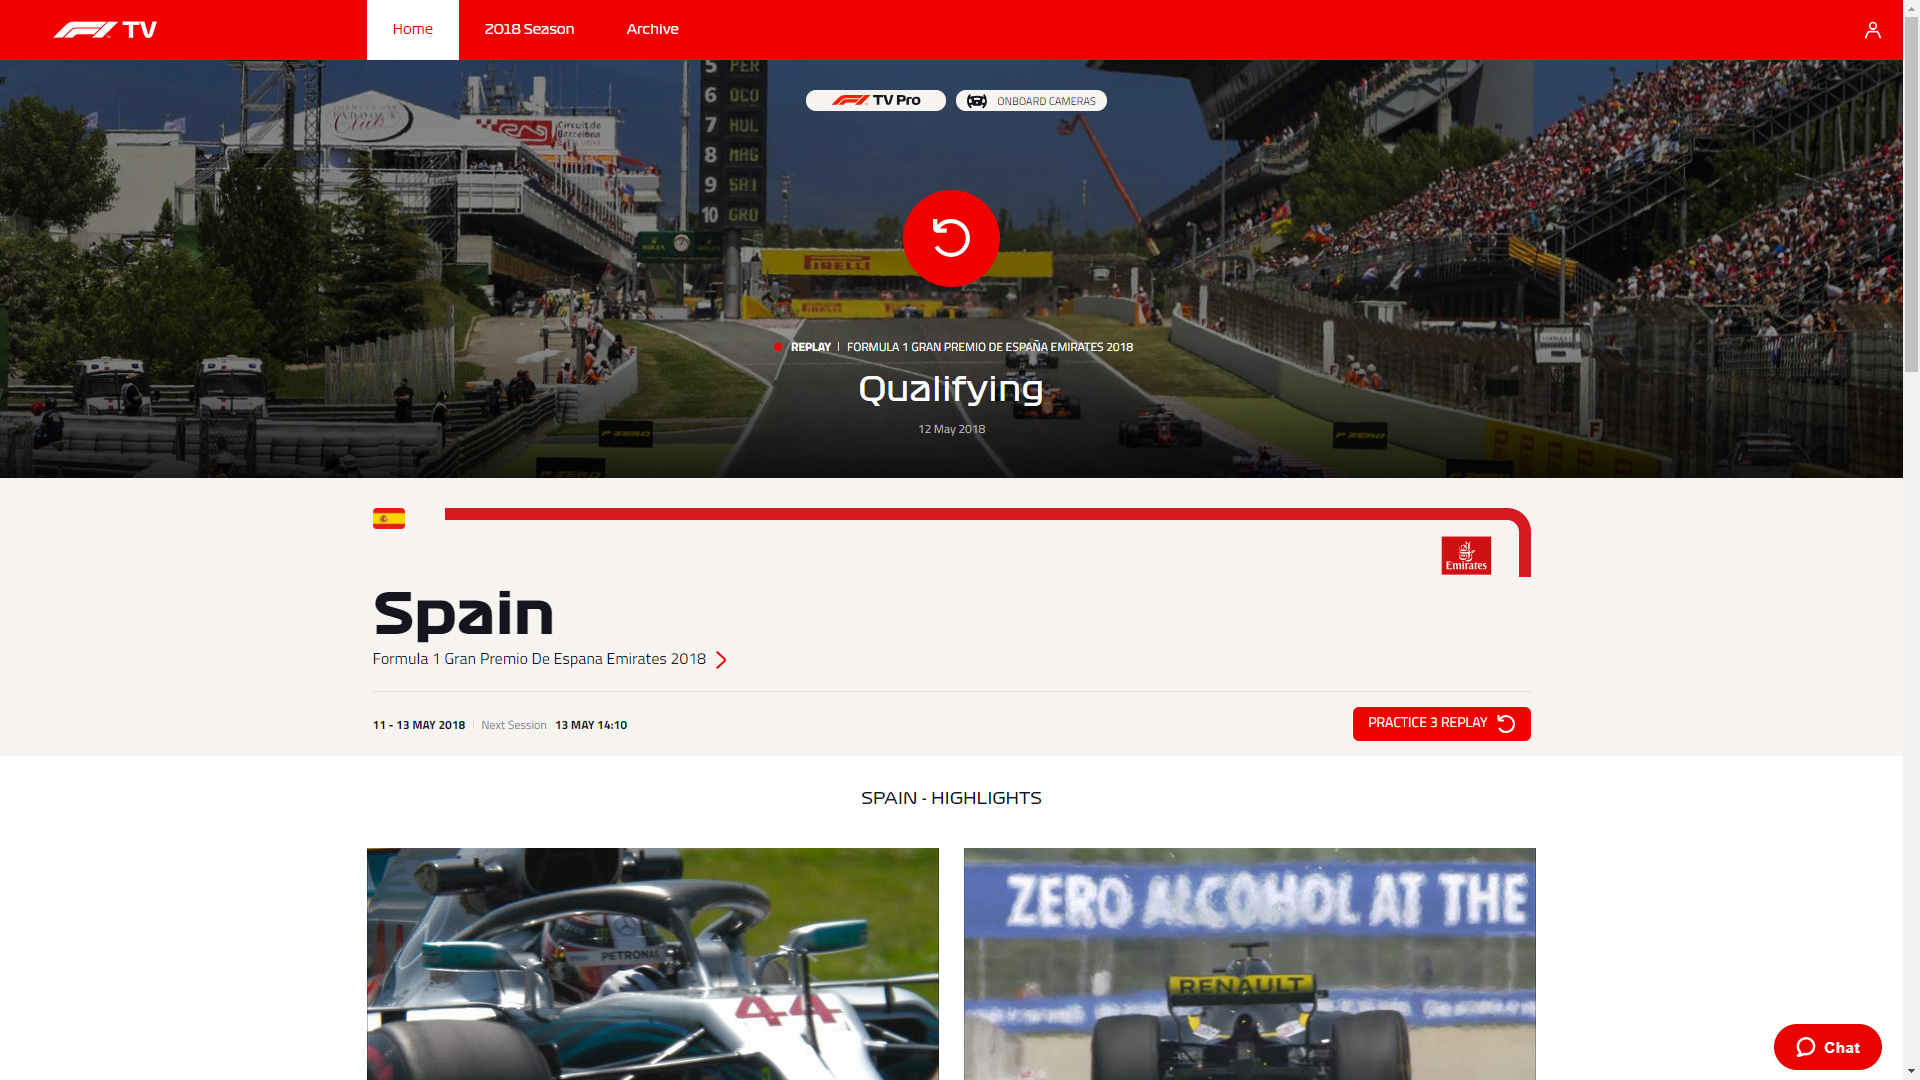 F1 TV users may receive compensation over faults · RaceFans